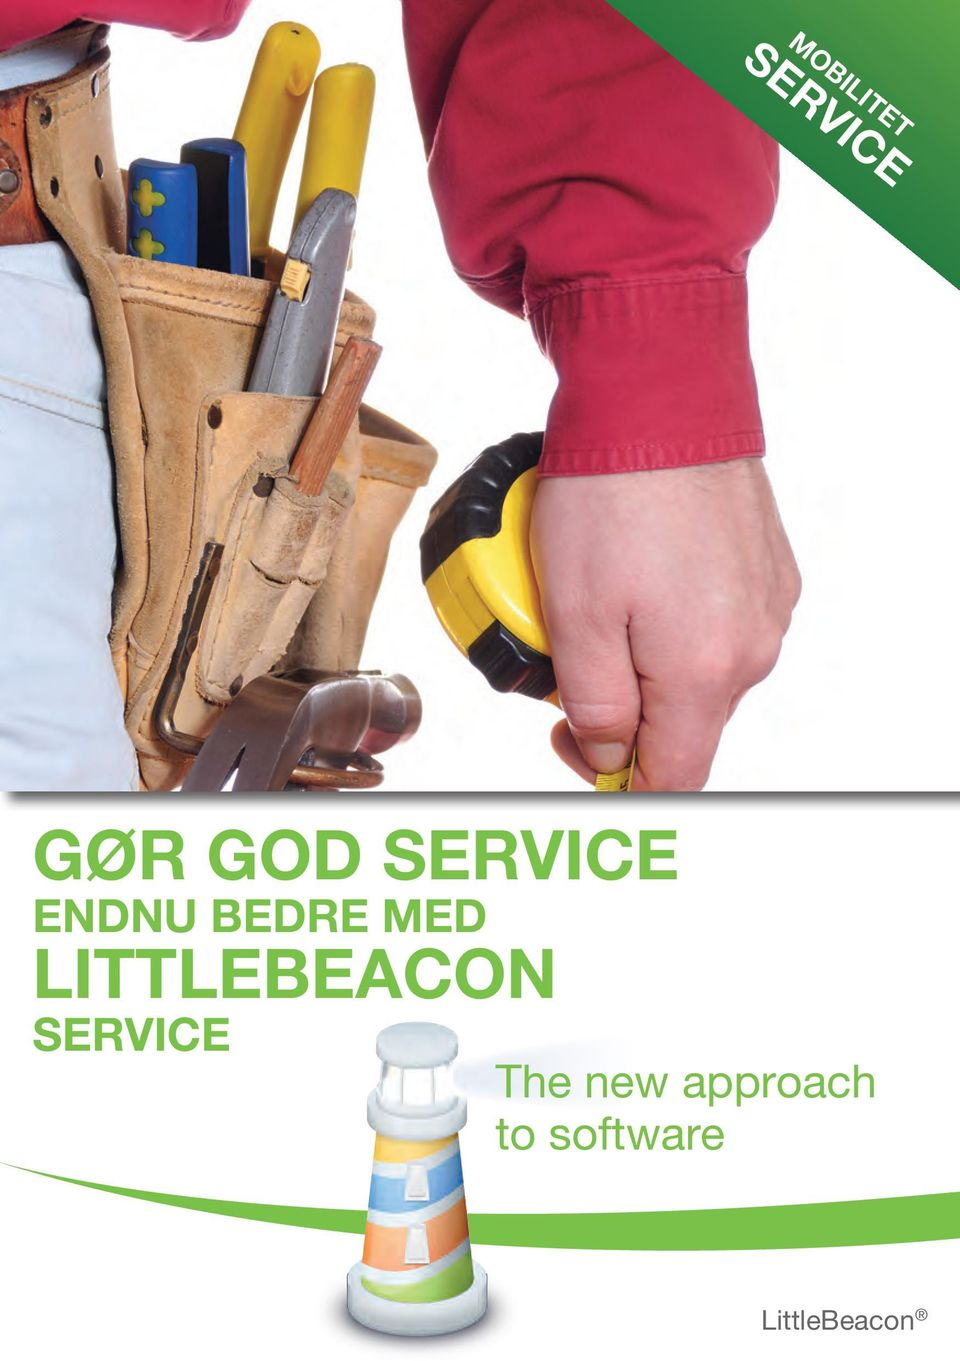 LITTLEBEACON SERVICE The